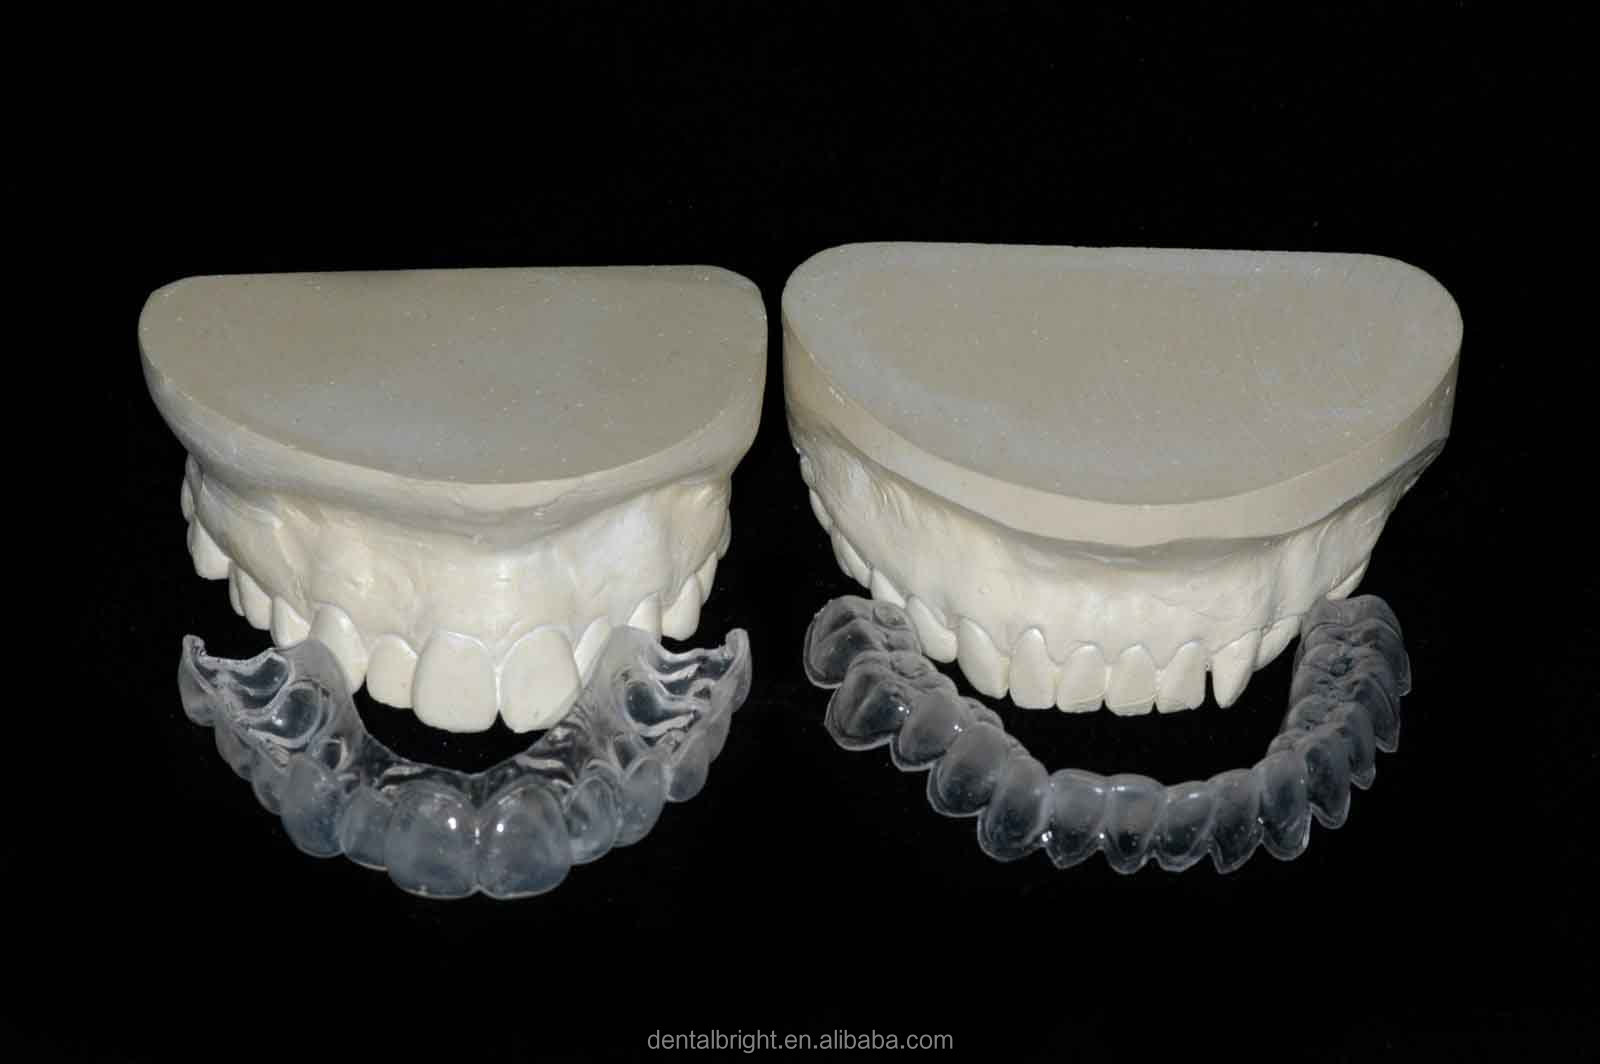 how to clean whitening trays